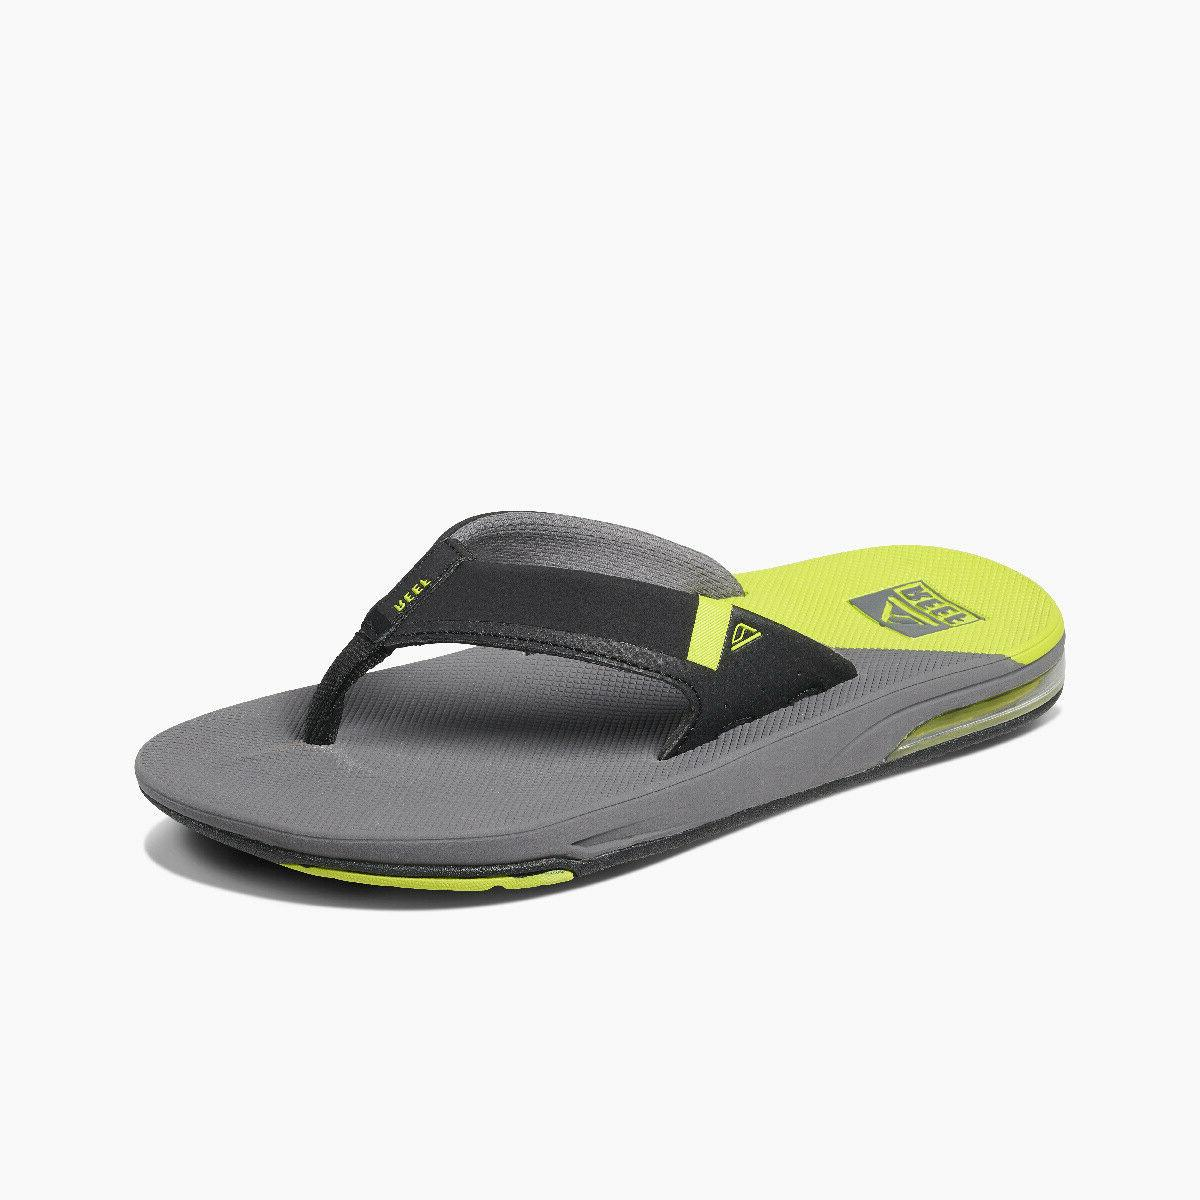 Reef Men's Fanning Low Bottle Opener Flip Flops - Grey/Lime